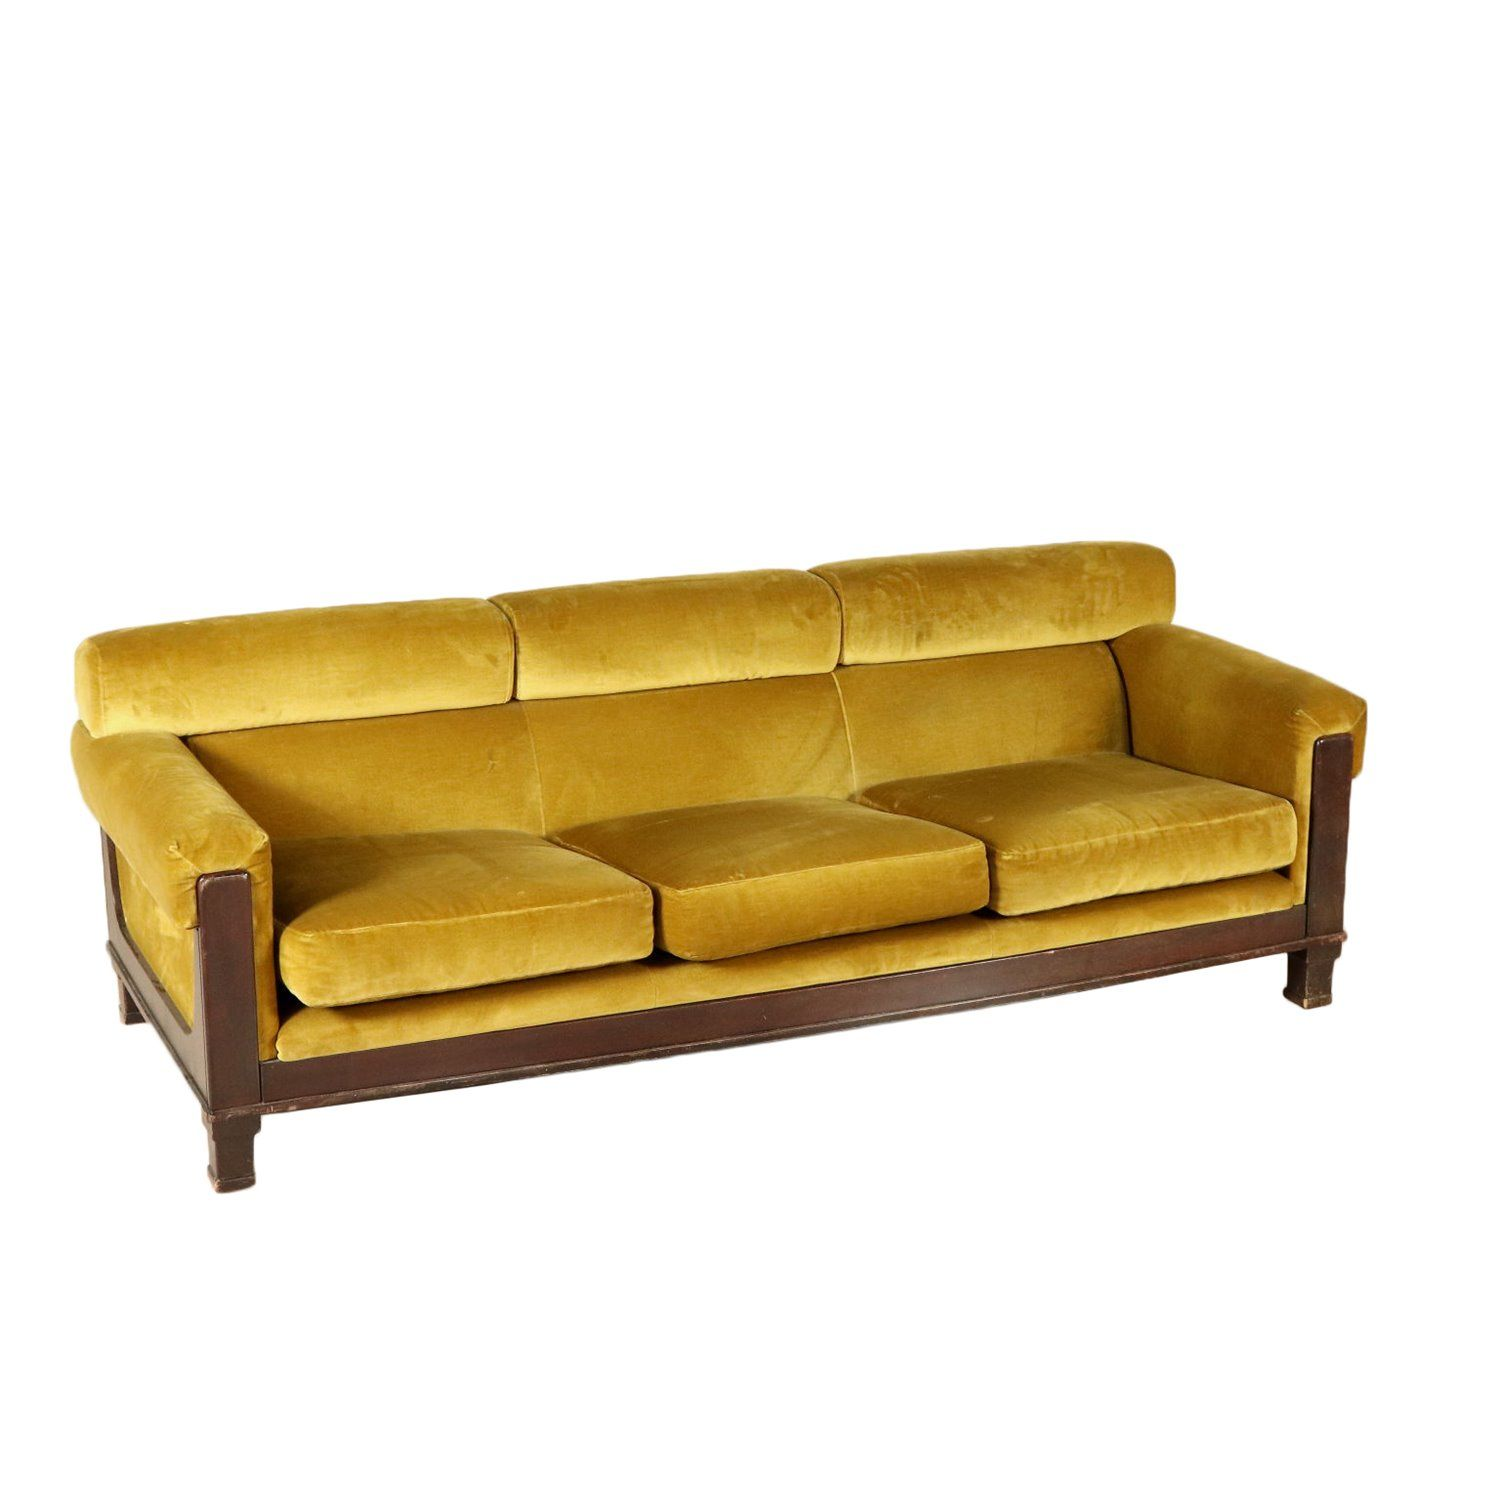 A Sofa Foam Padding Velvet Upholstery Stained Wood On Sight Structure Manufactured In Italy 1960s Interior Modern Sofa Designs Vintage Sofa Staining Wood